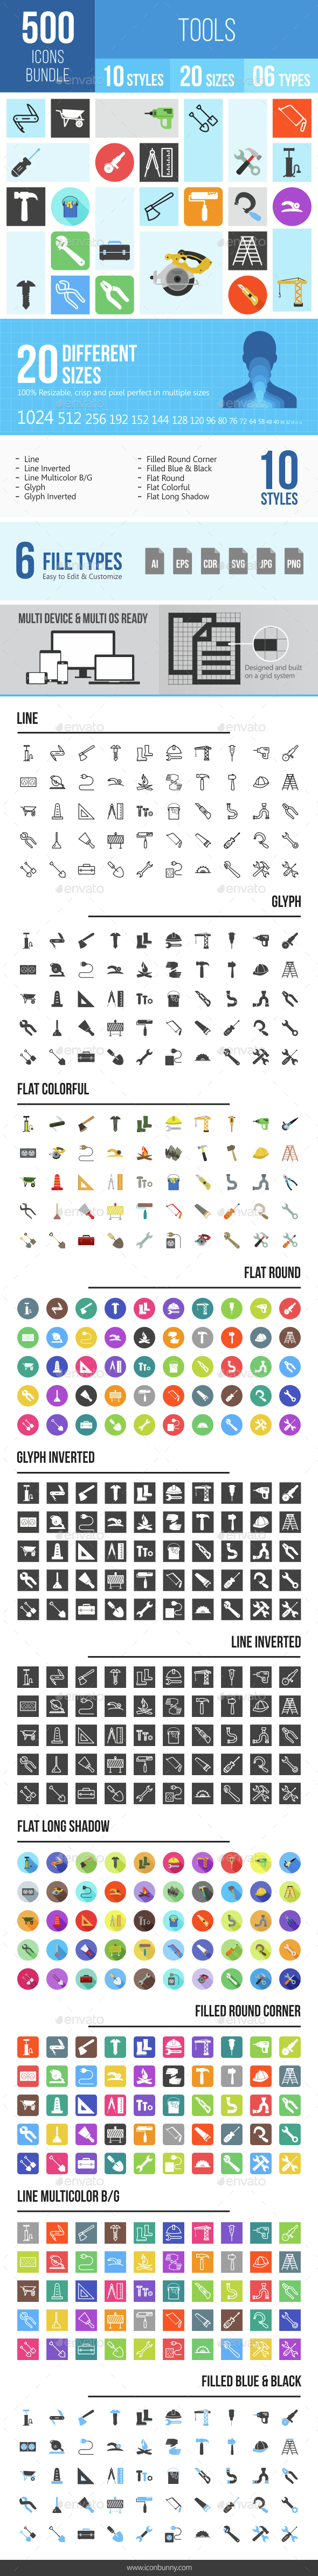 500 Tools Icons Bundle - Icons